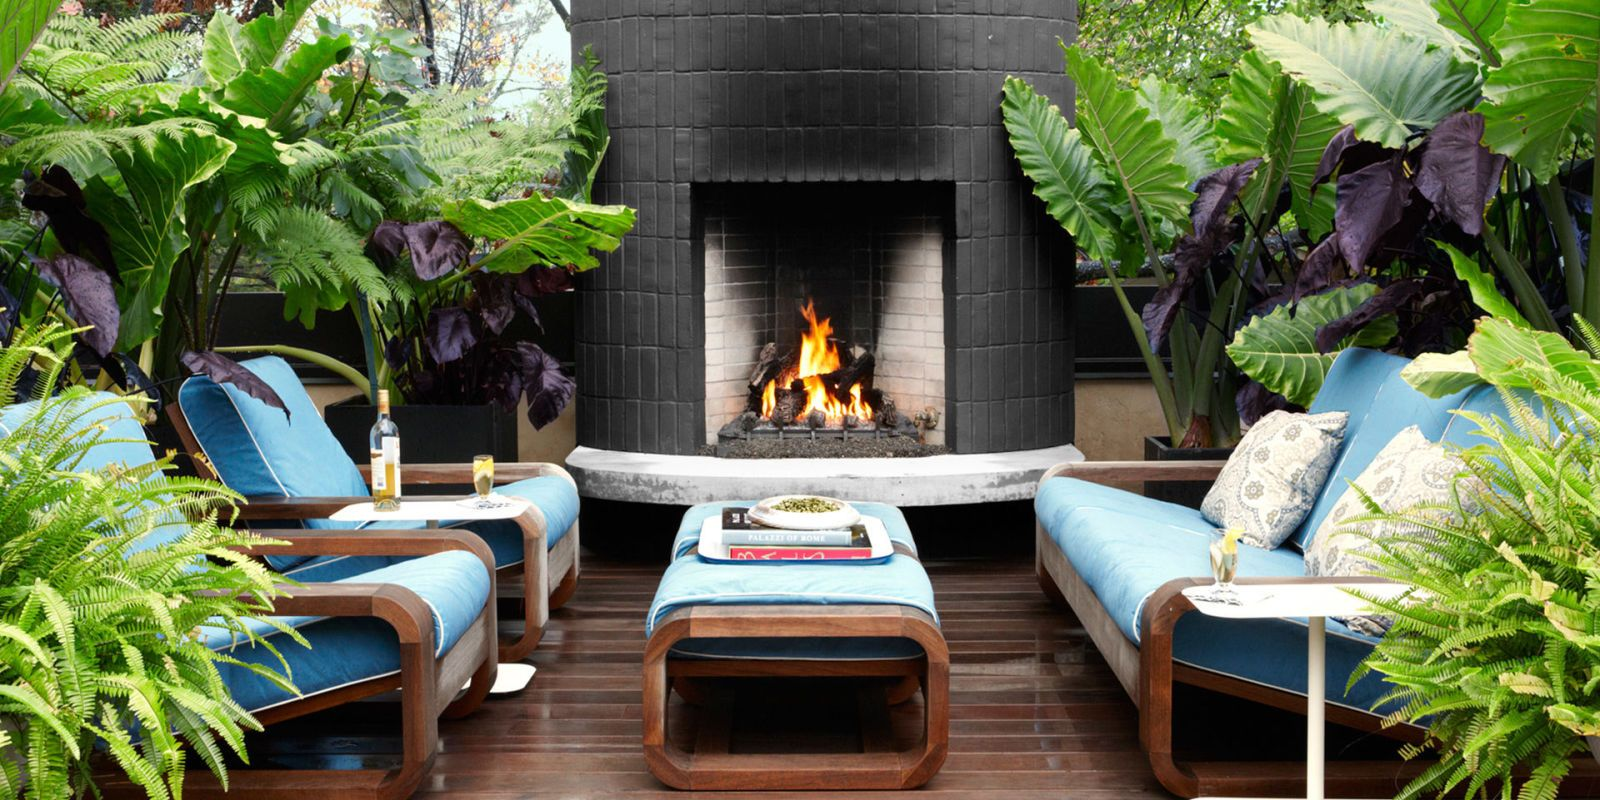 22 outdoor fireplaces that will keep you warm all night outdoor rh housebeautiful com outdoor fireplace wood deck outdoor fireplace covered deck